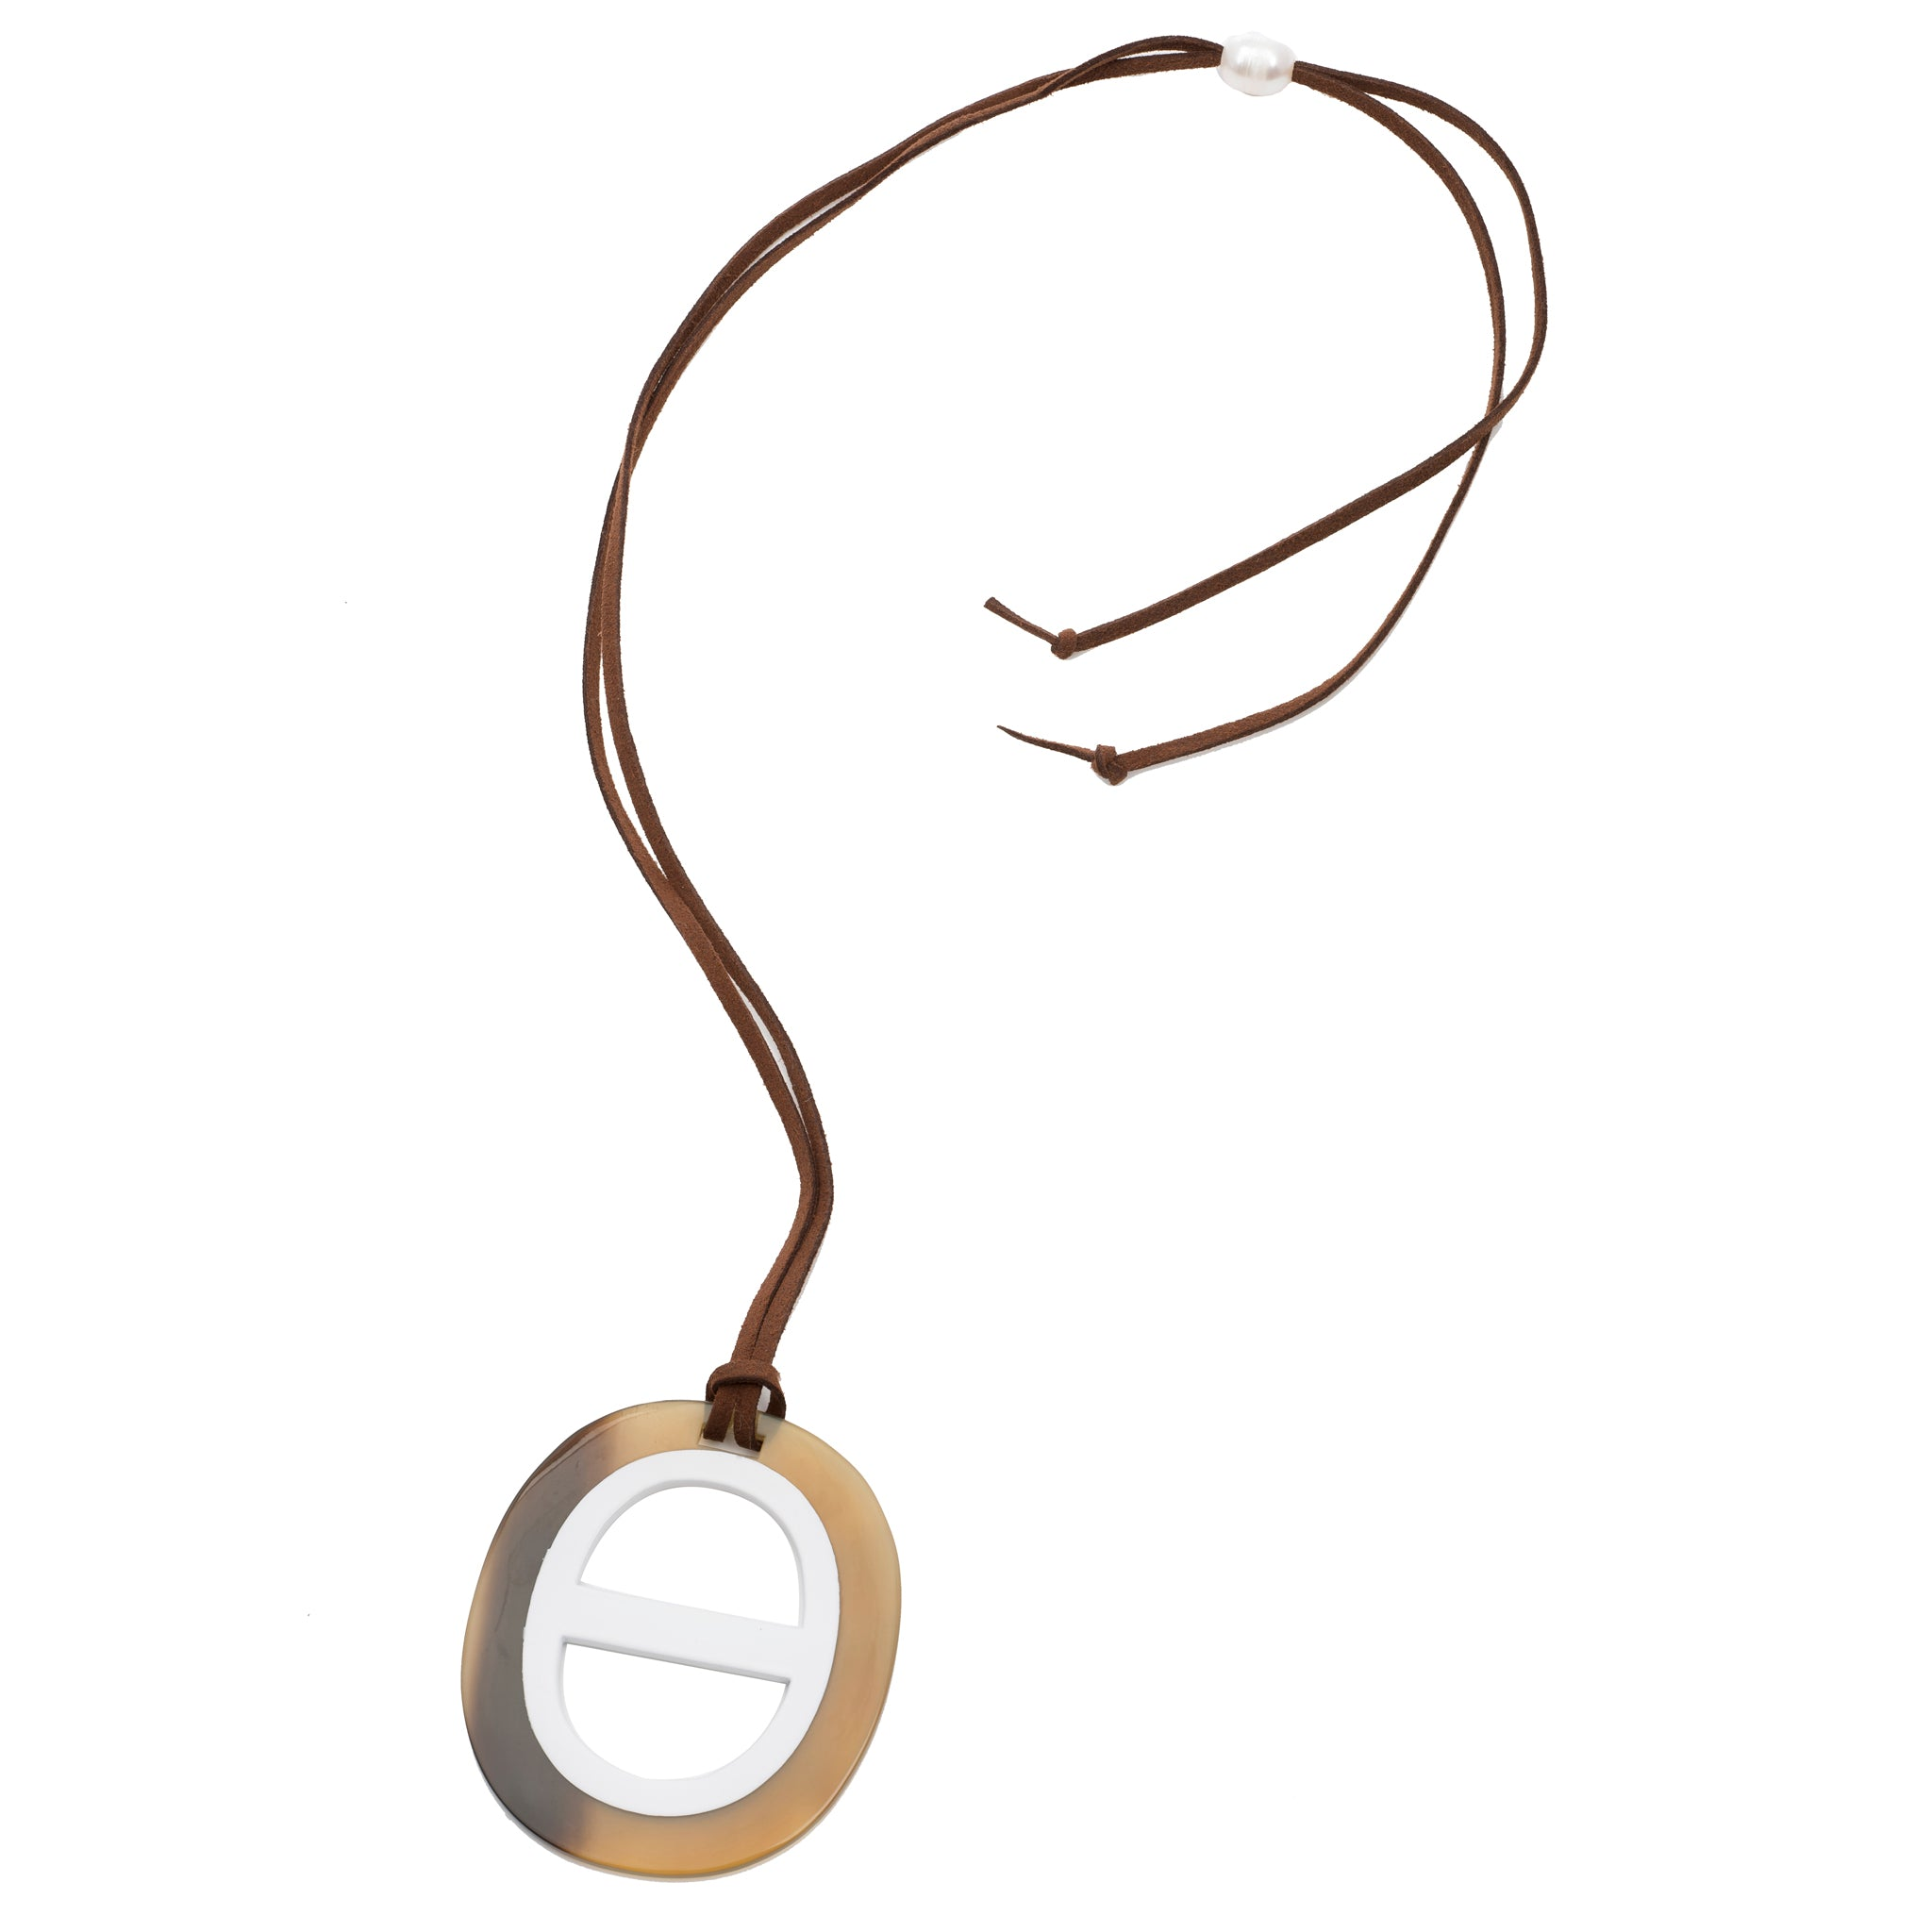 Oval Natural Color Buffalo Horn Pendant Poppy Lacquer Center Detail Cord View - Vivo Direct